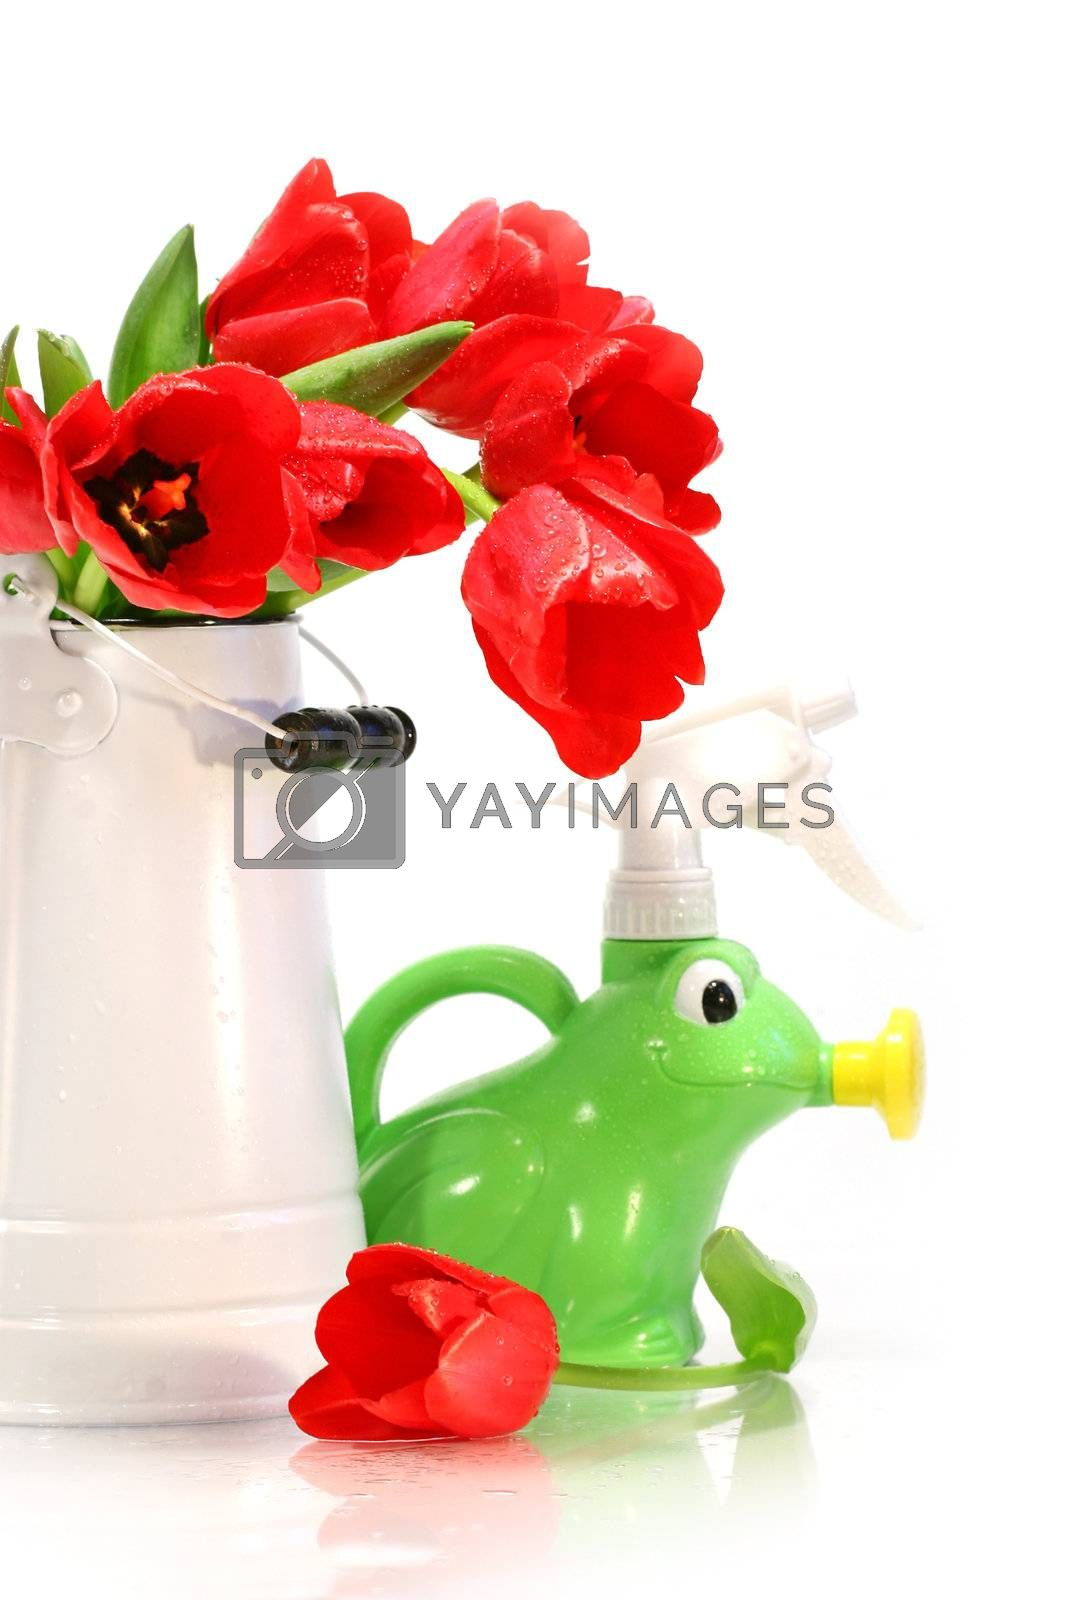 Spring tulips in vase with watering can